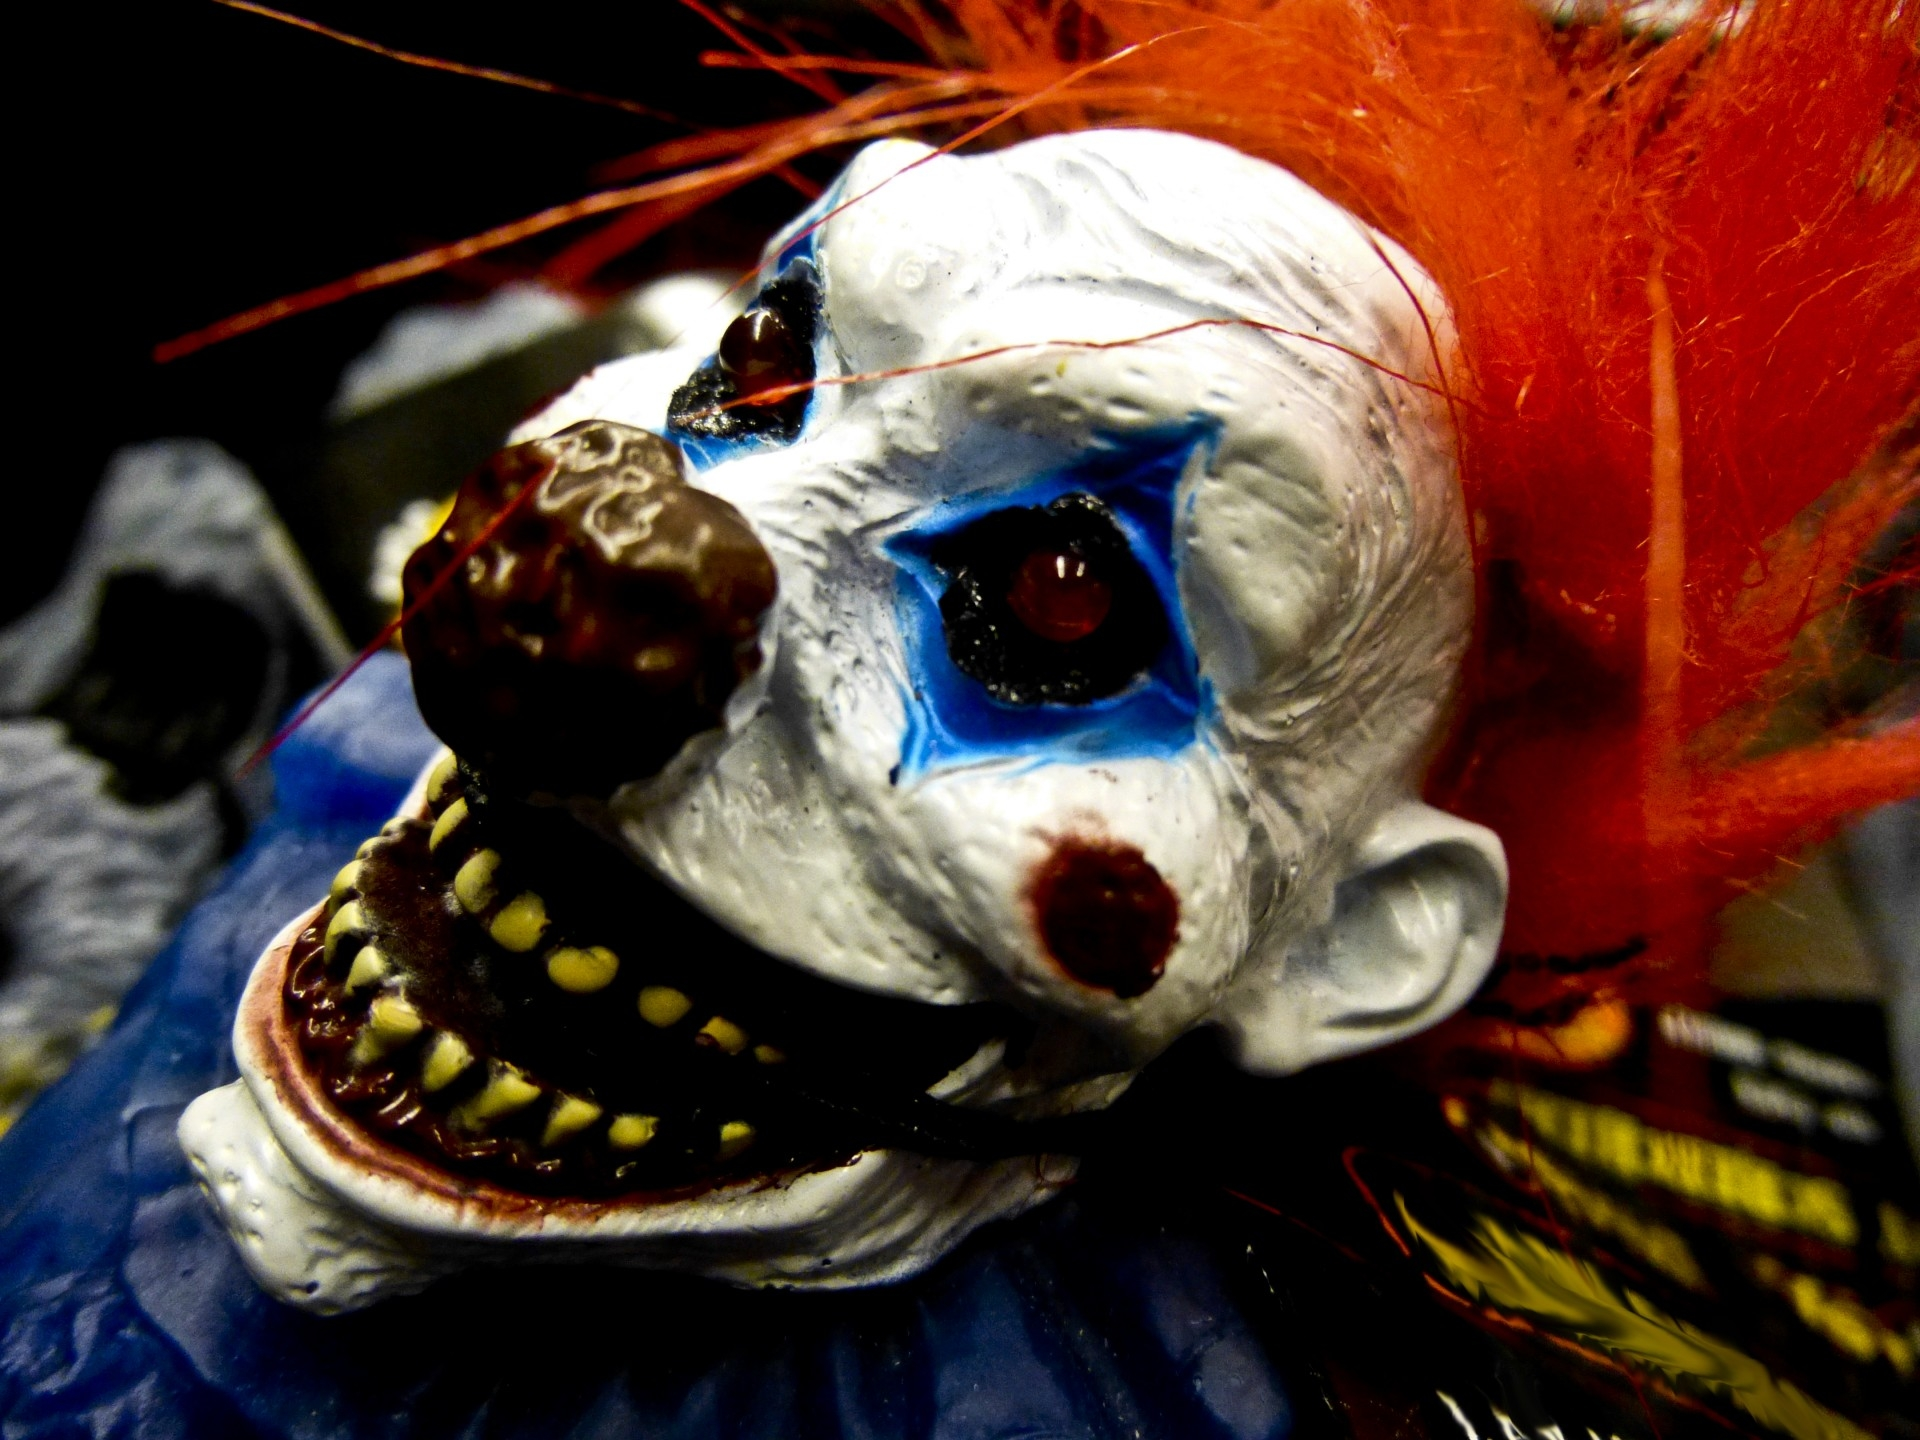 The scary clowns are migrating to our fair city!